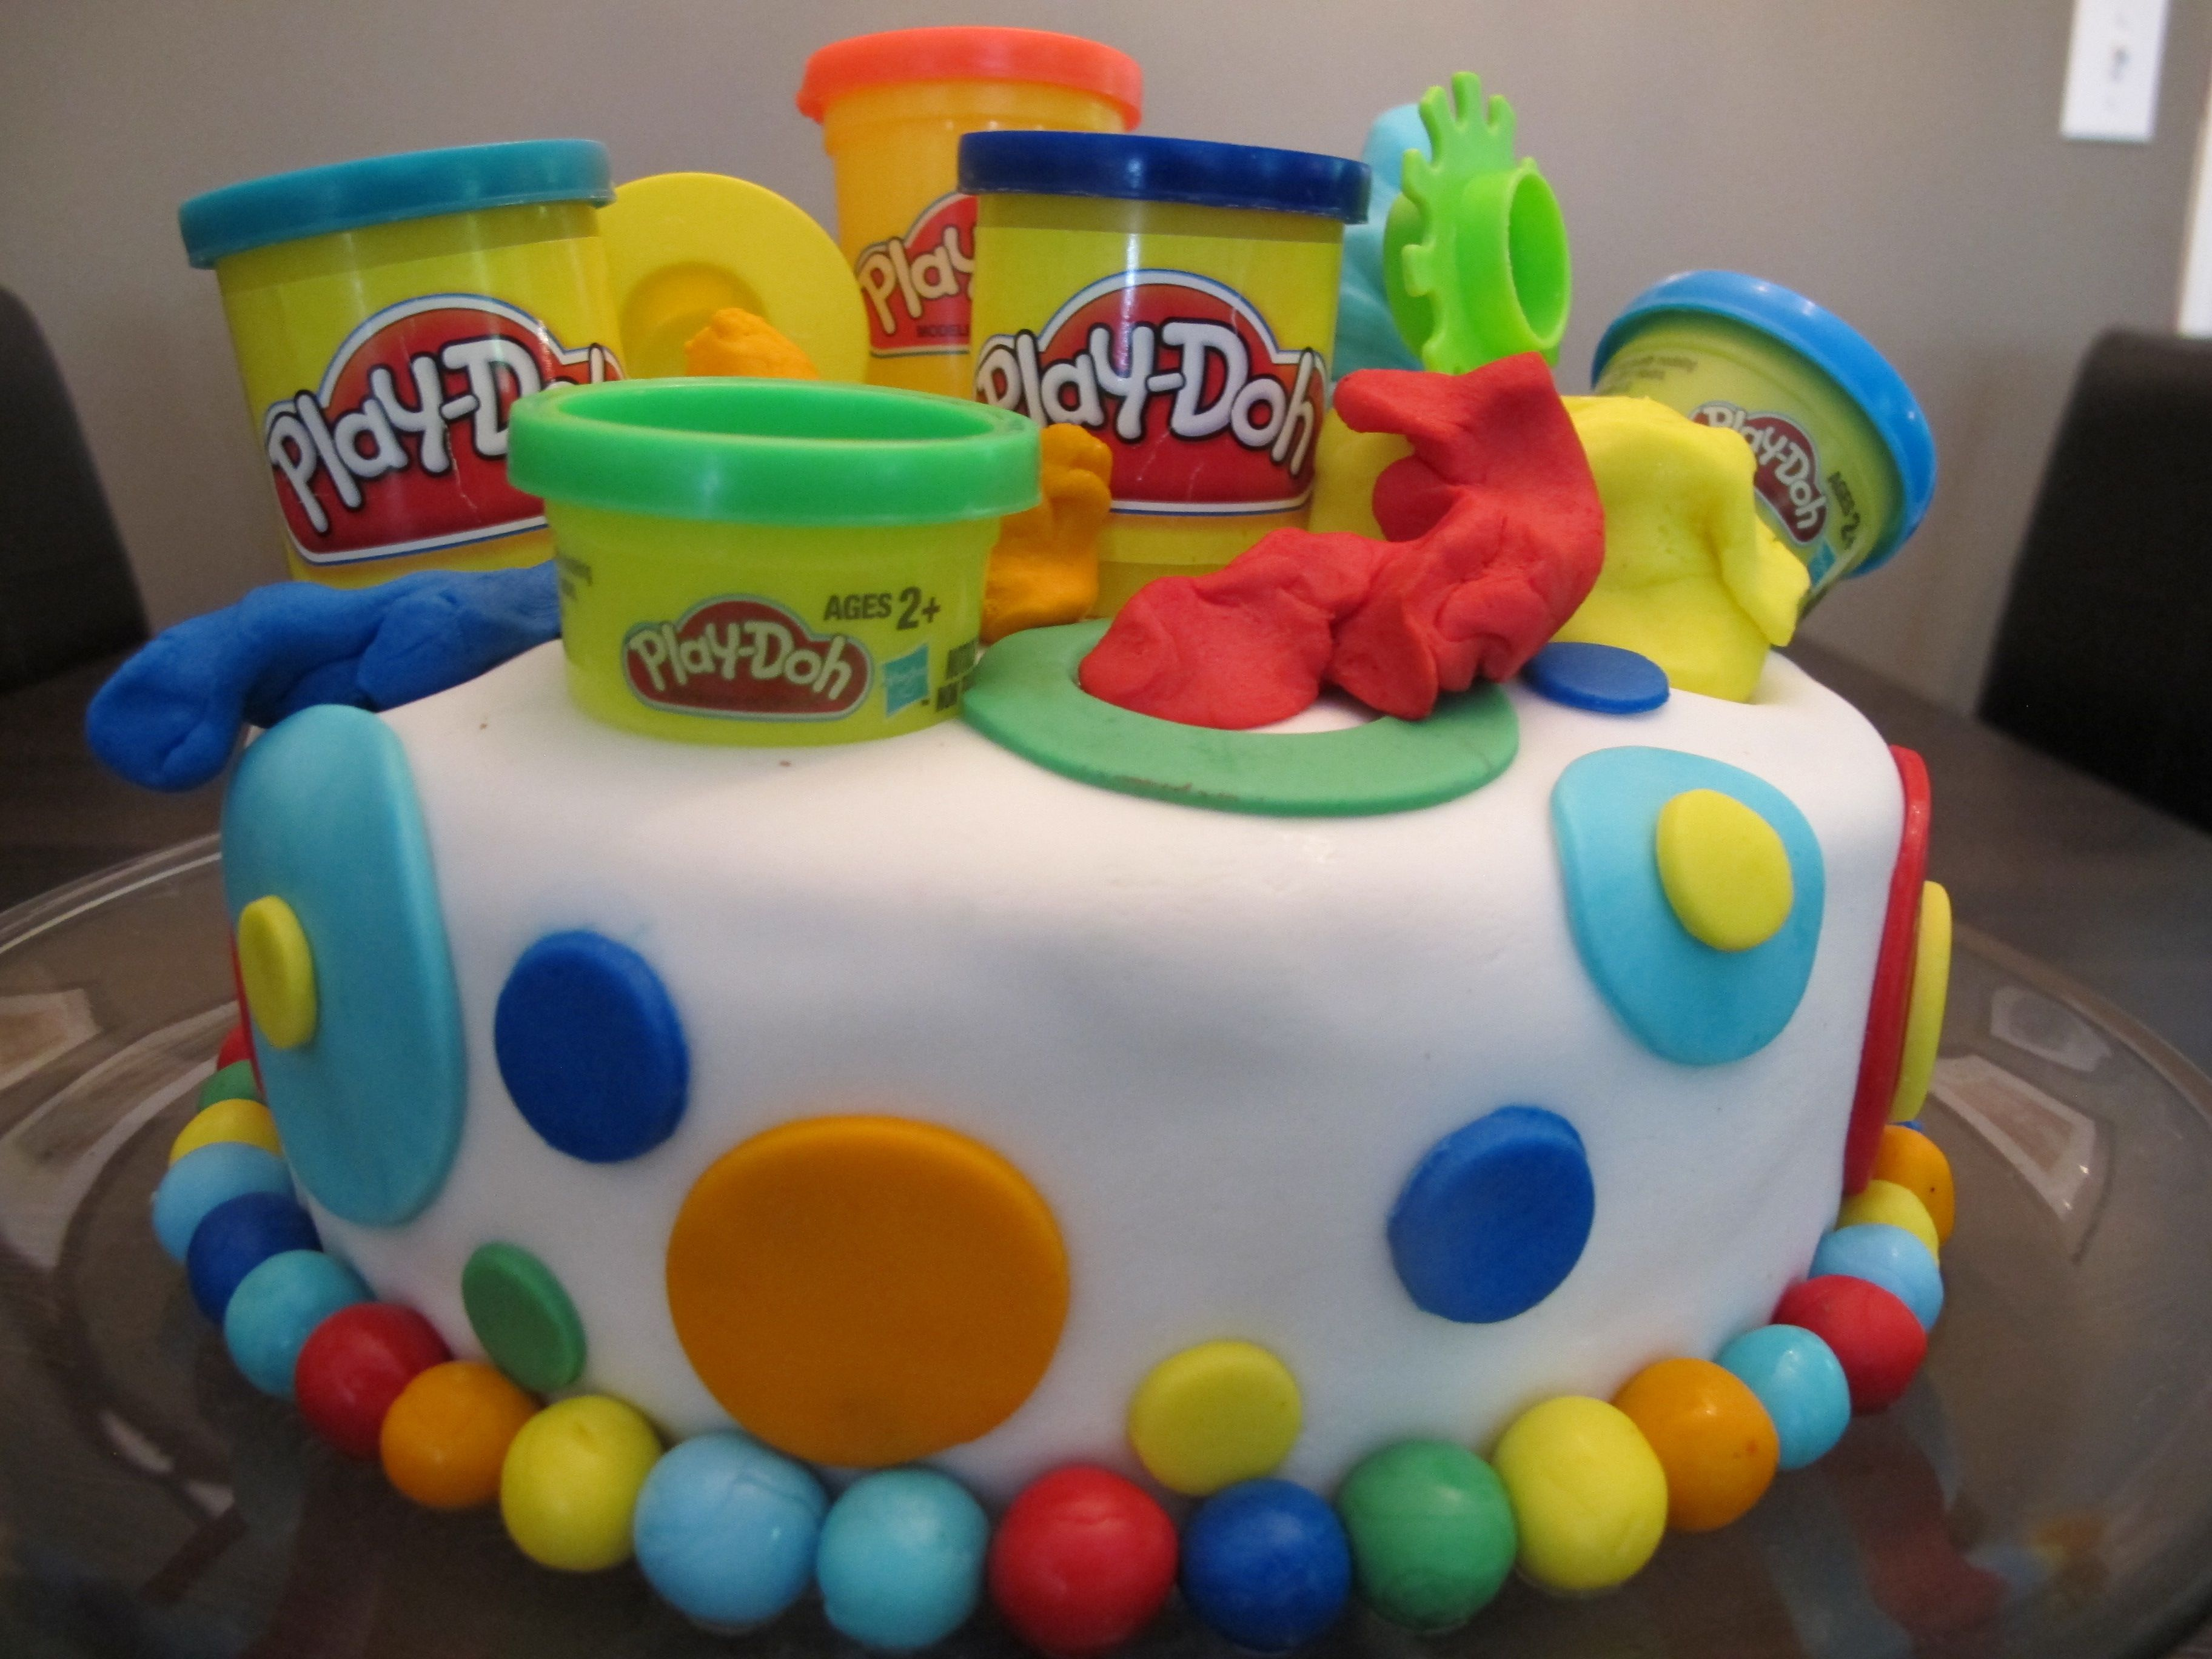 Playdough Cake Decorating Kit : Play doh themed cake for my little 4 year old s party this ...